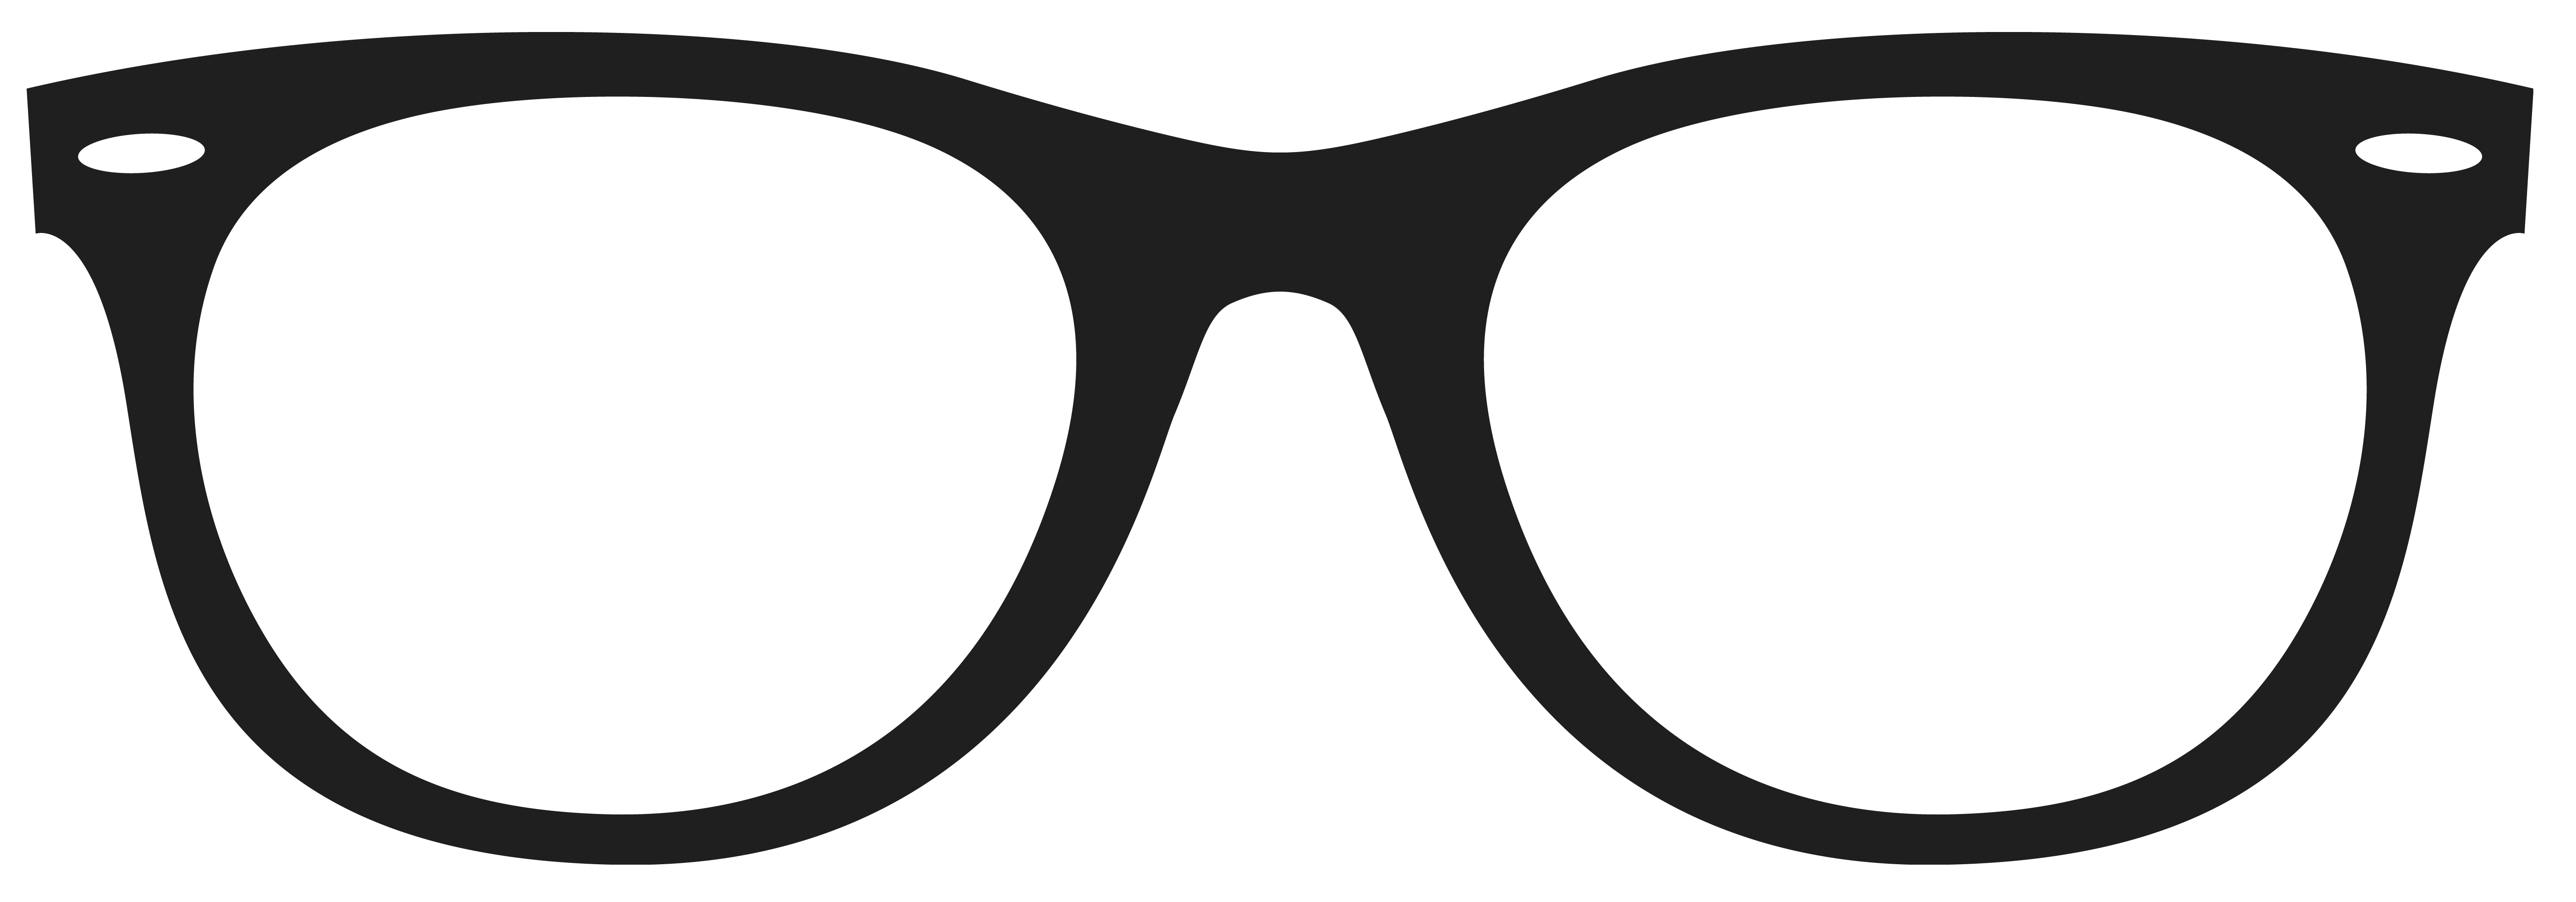 Movember Glasses Png Clipart Image Gallery Yopriceville High Quality Images And Transparent Png Free Clip Clip Art Clipart Images Mirrored Lens Sunglasses